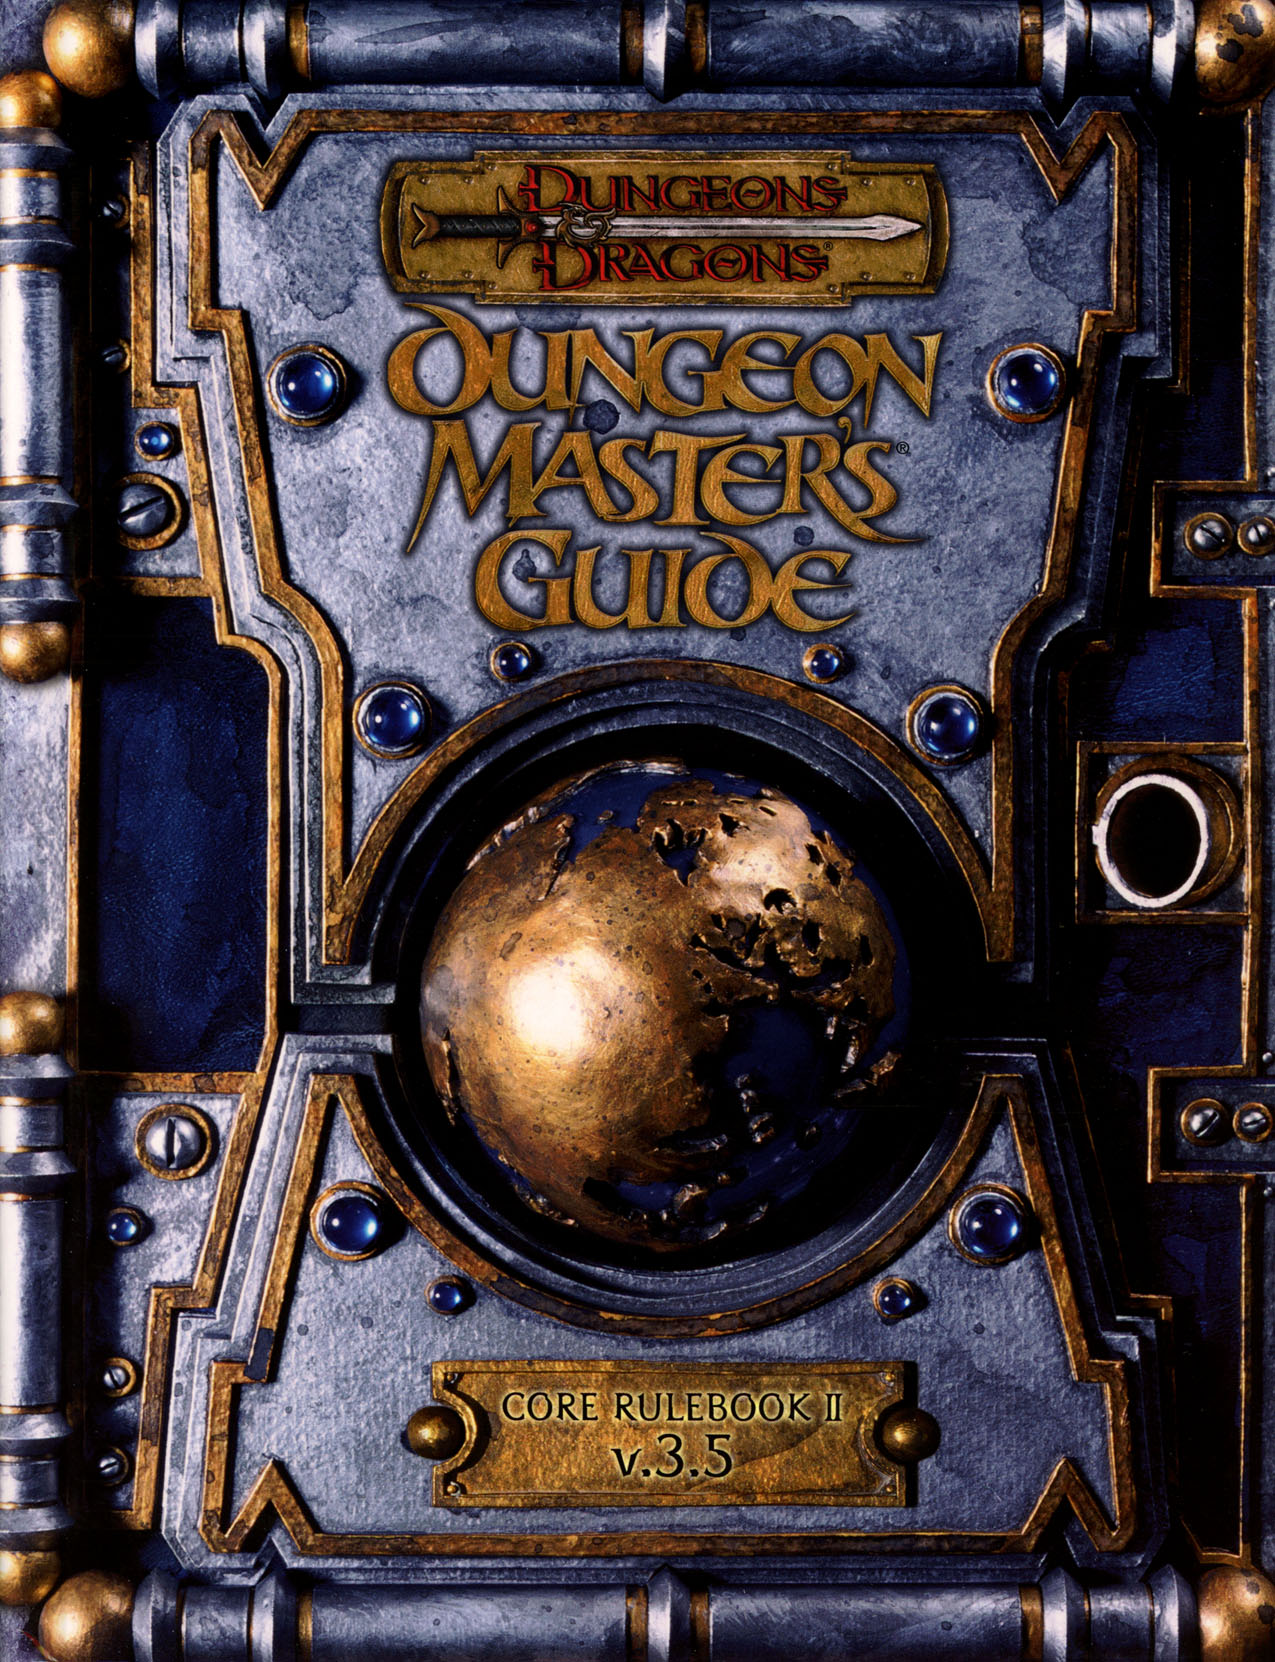 Dungeon Master's Guide v.3.5